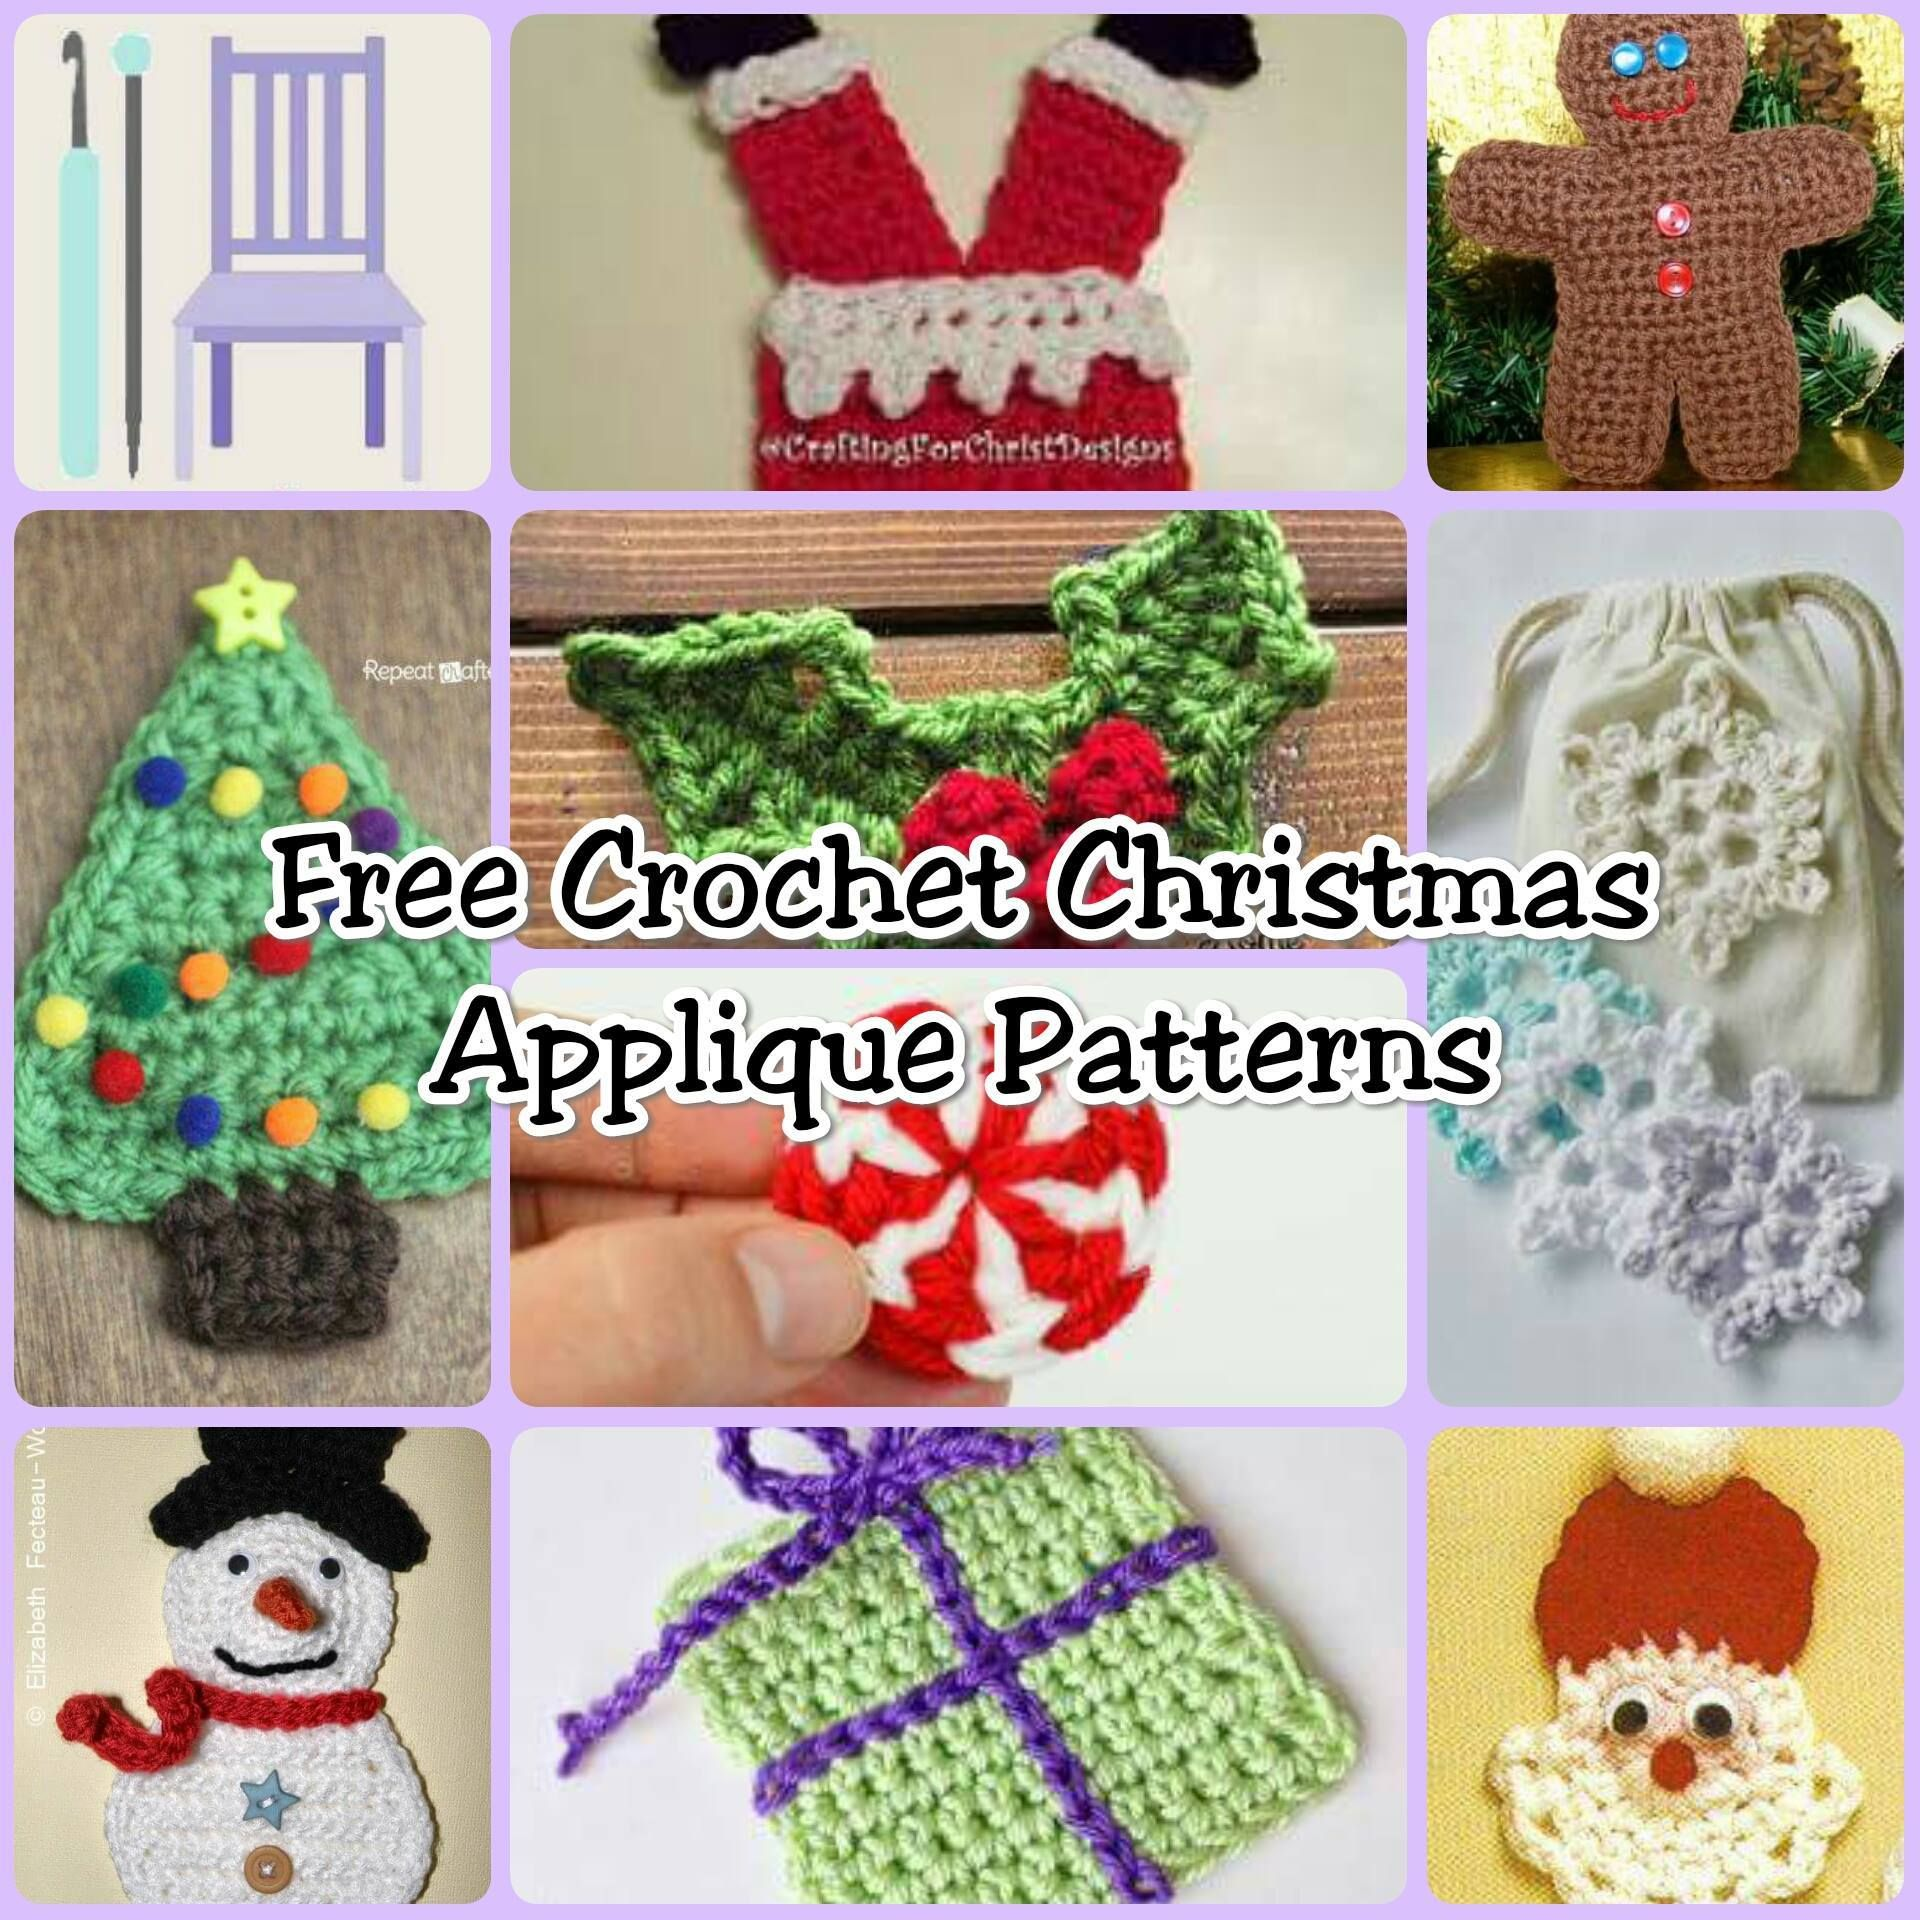 These crochet christmas applique patterns are going to make the holidays easy. Whether you add them hat or pillow everything you make will be feastive.